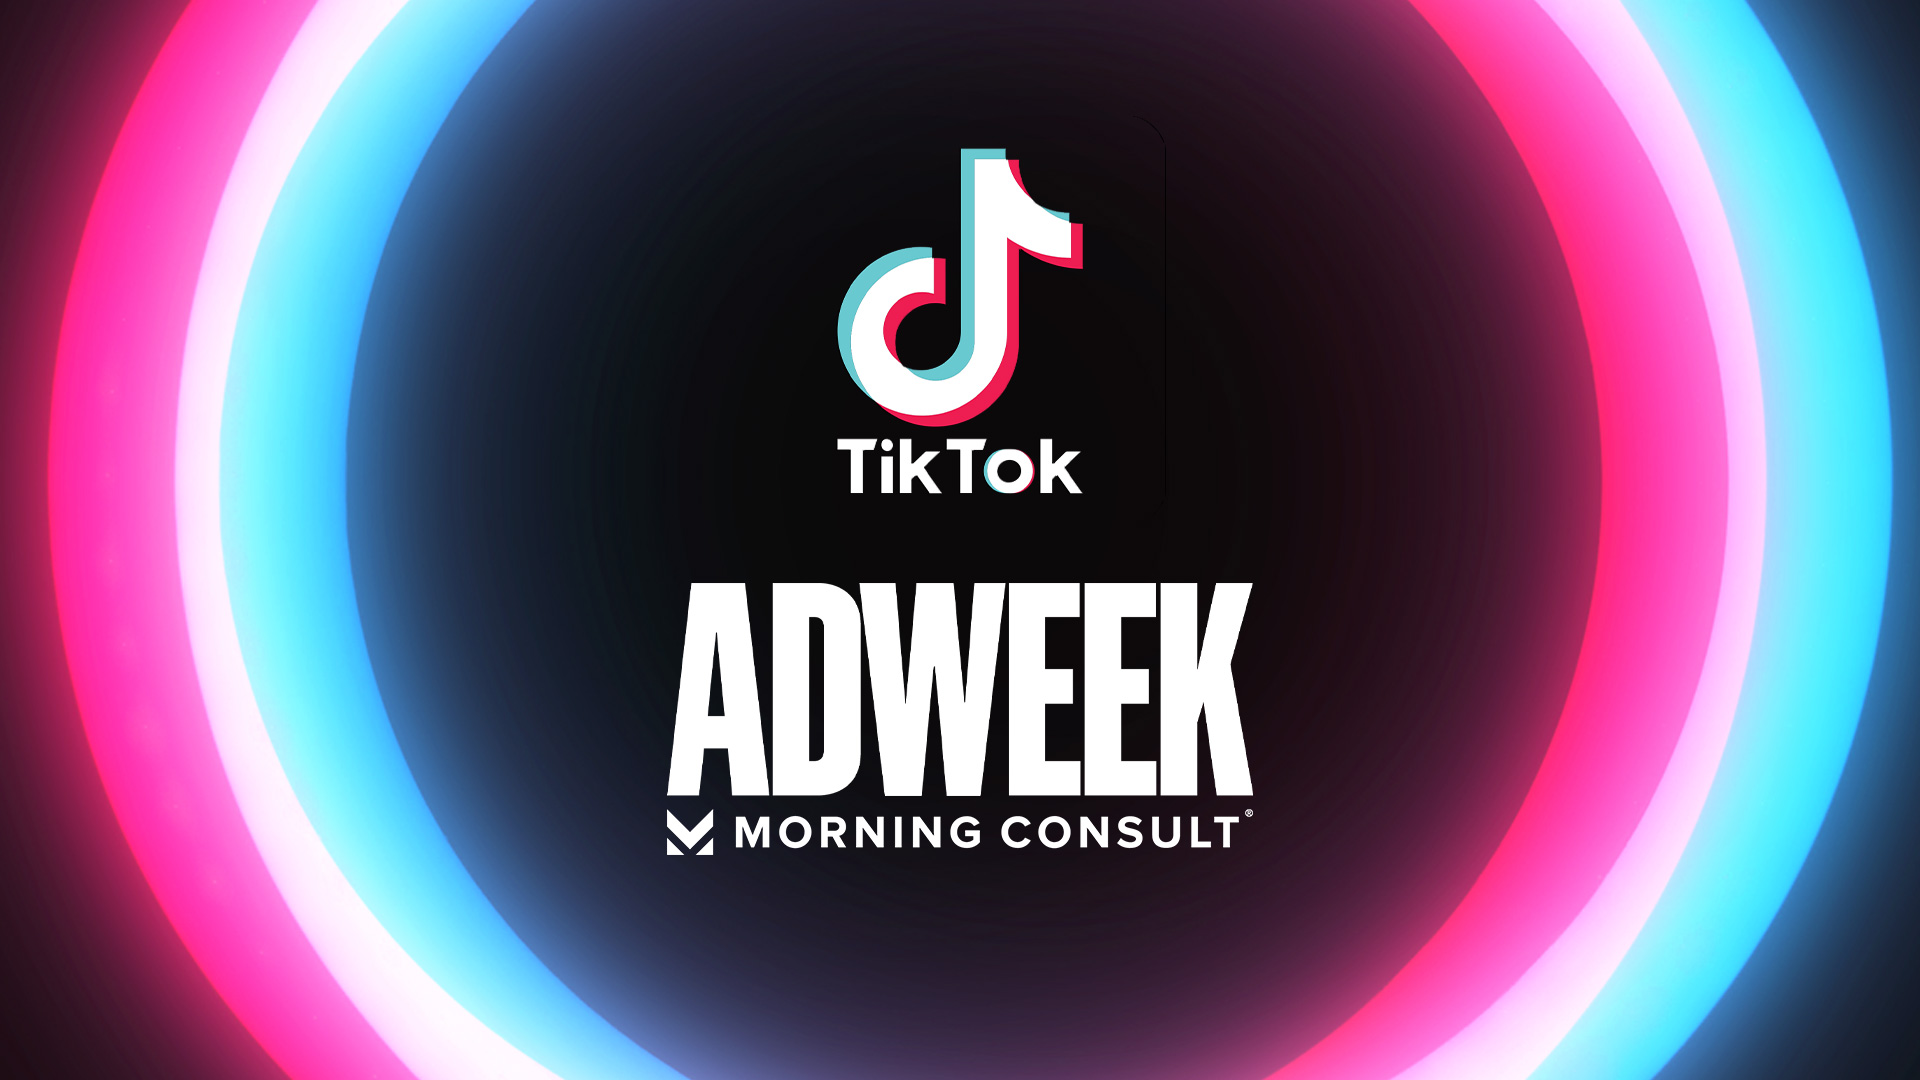 The new data shows that 30% of adults currently have an account on TikTok—for Gen Z, that percentage jumps to 71%.